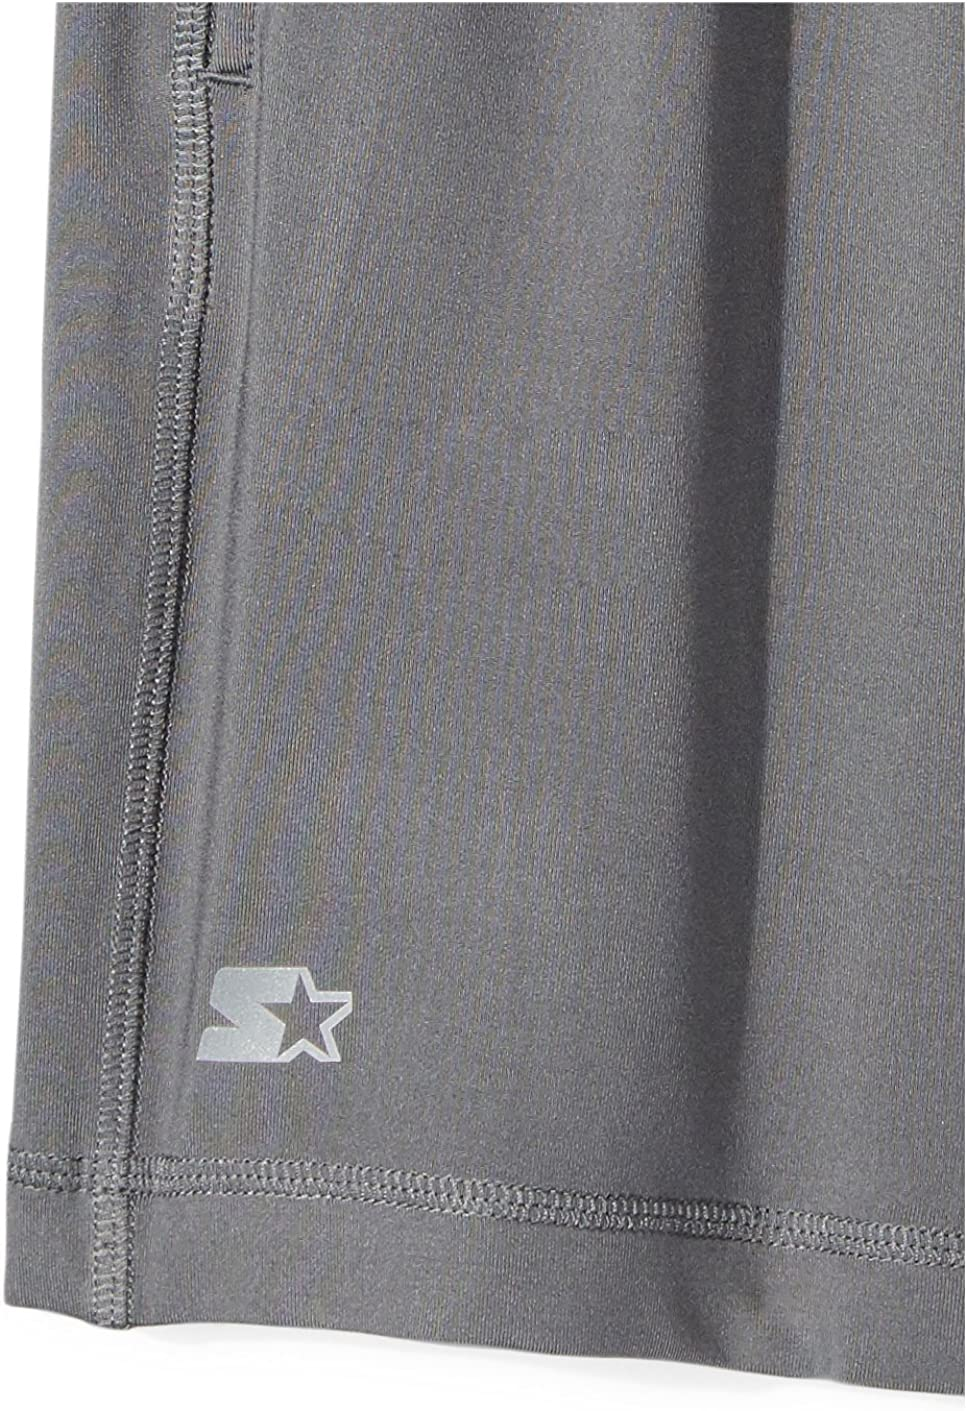 Starter Boys 8 Stretch Training Short with Pockets Exclusive